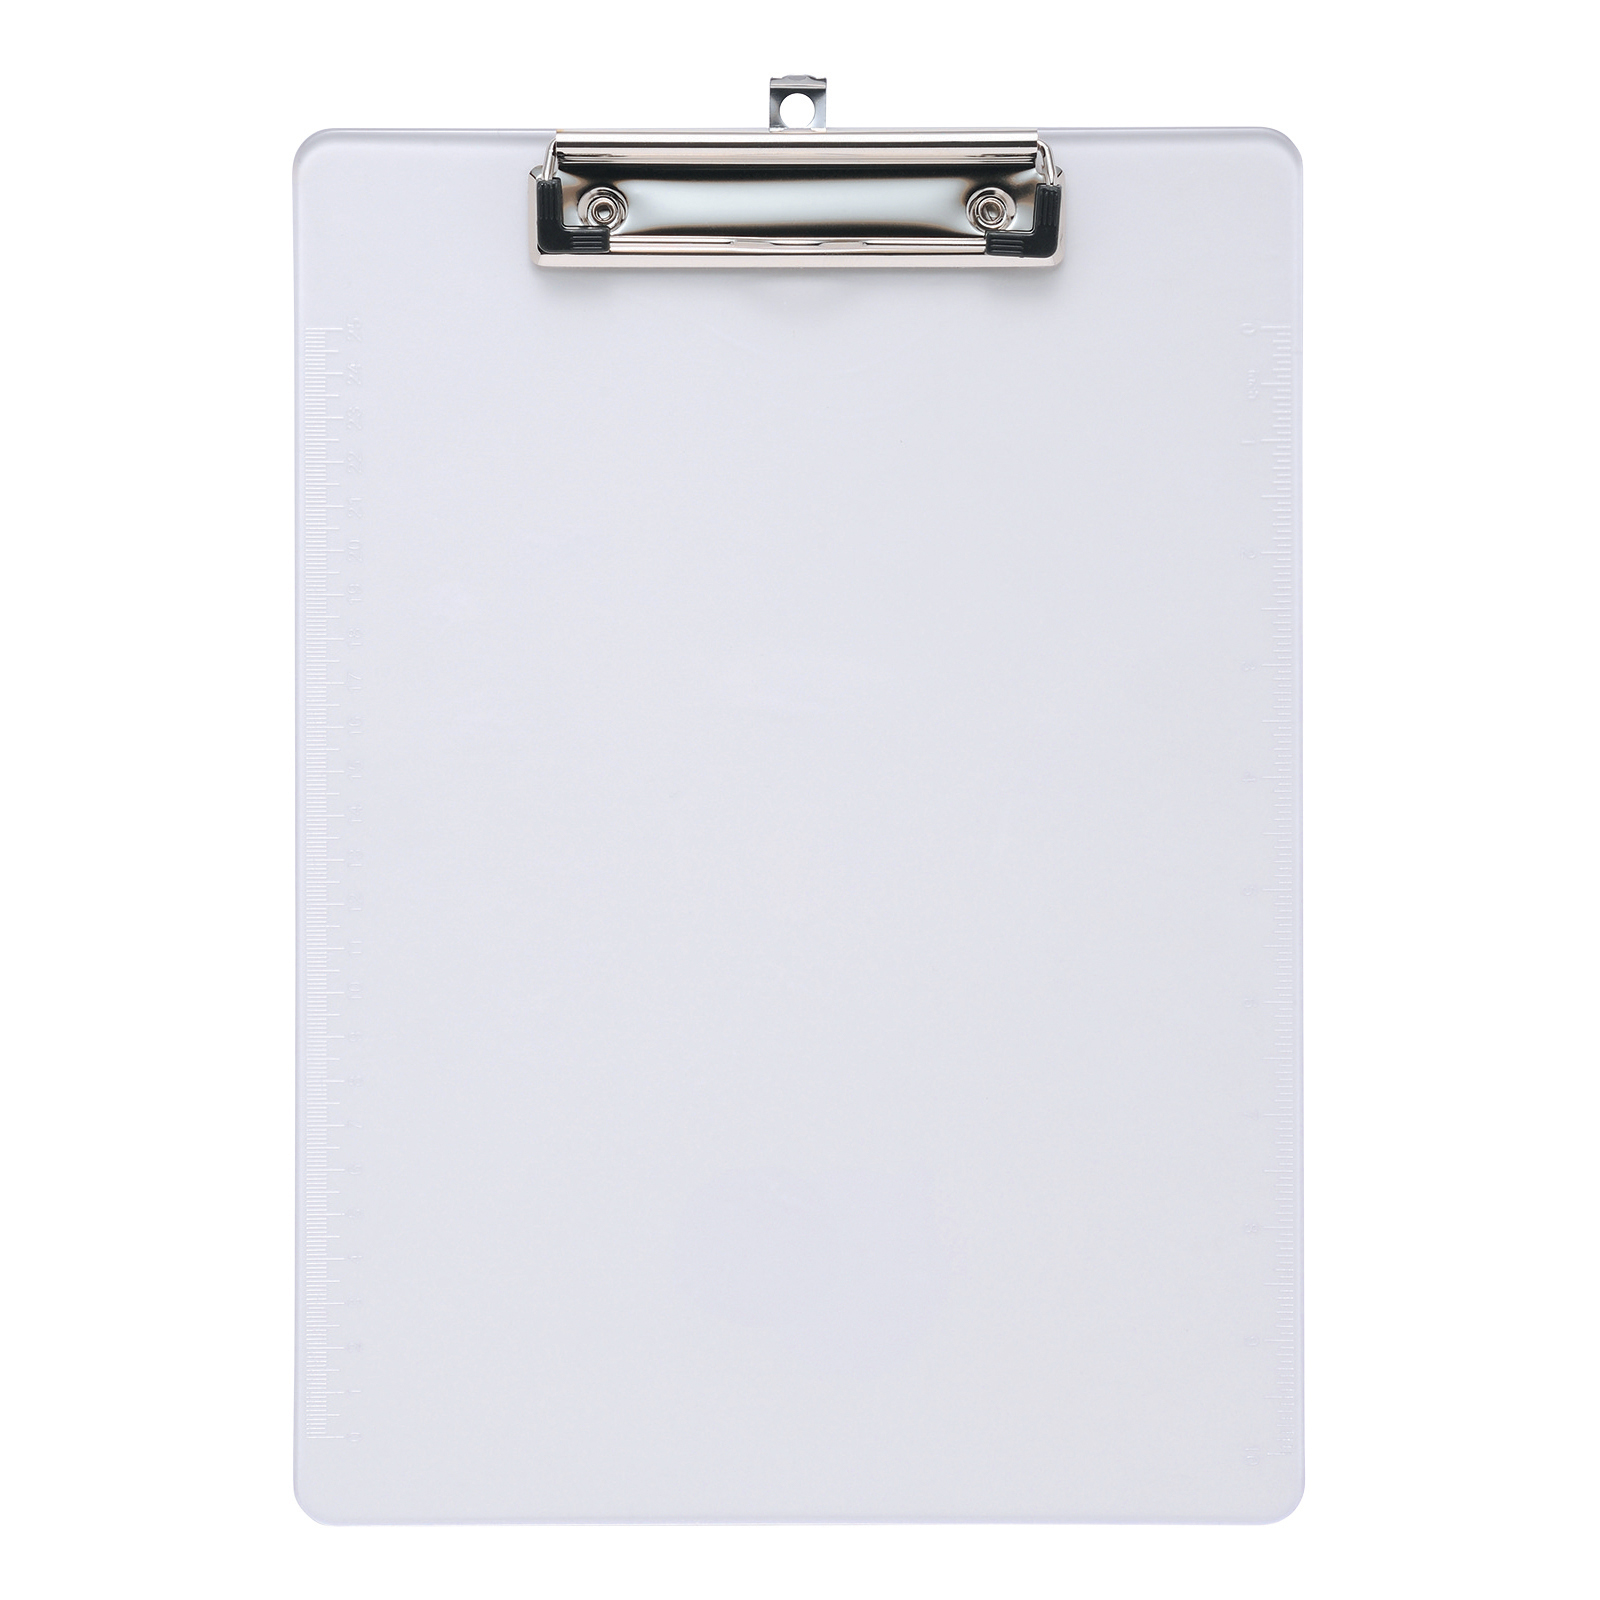 Clipboards 5 Star Office Clipboard Solid Plastic Durable with Rounded Corners A4 Clear